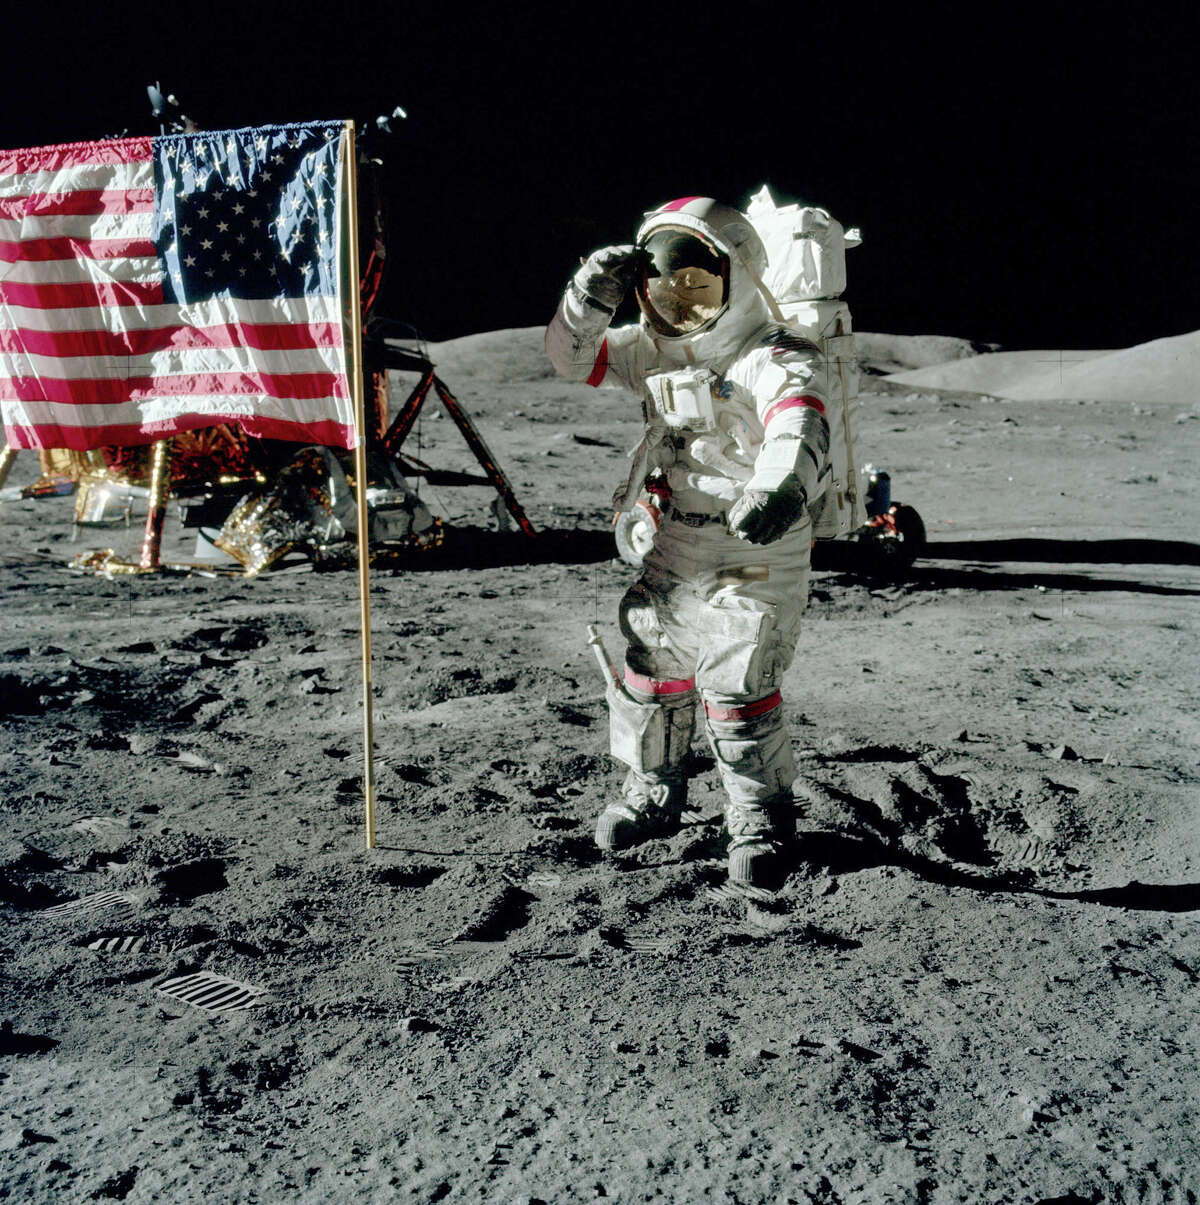 Gene Cernan salutes the Stars and Stripes during the Apollo 17 mission.